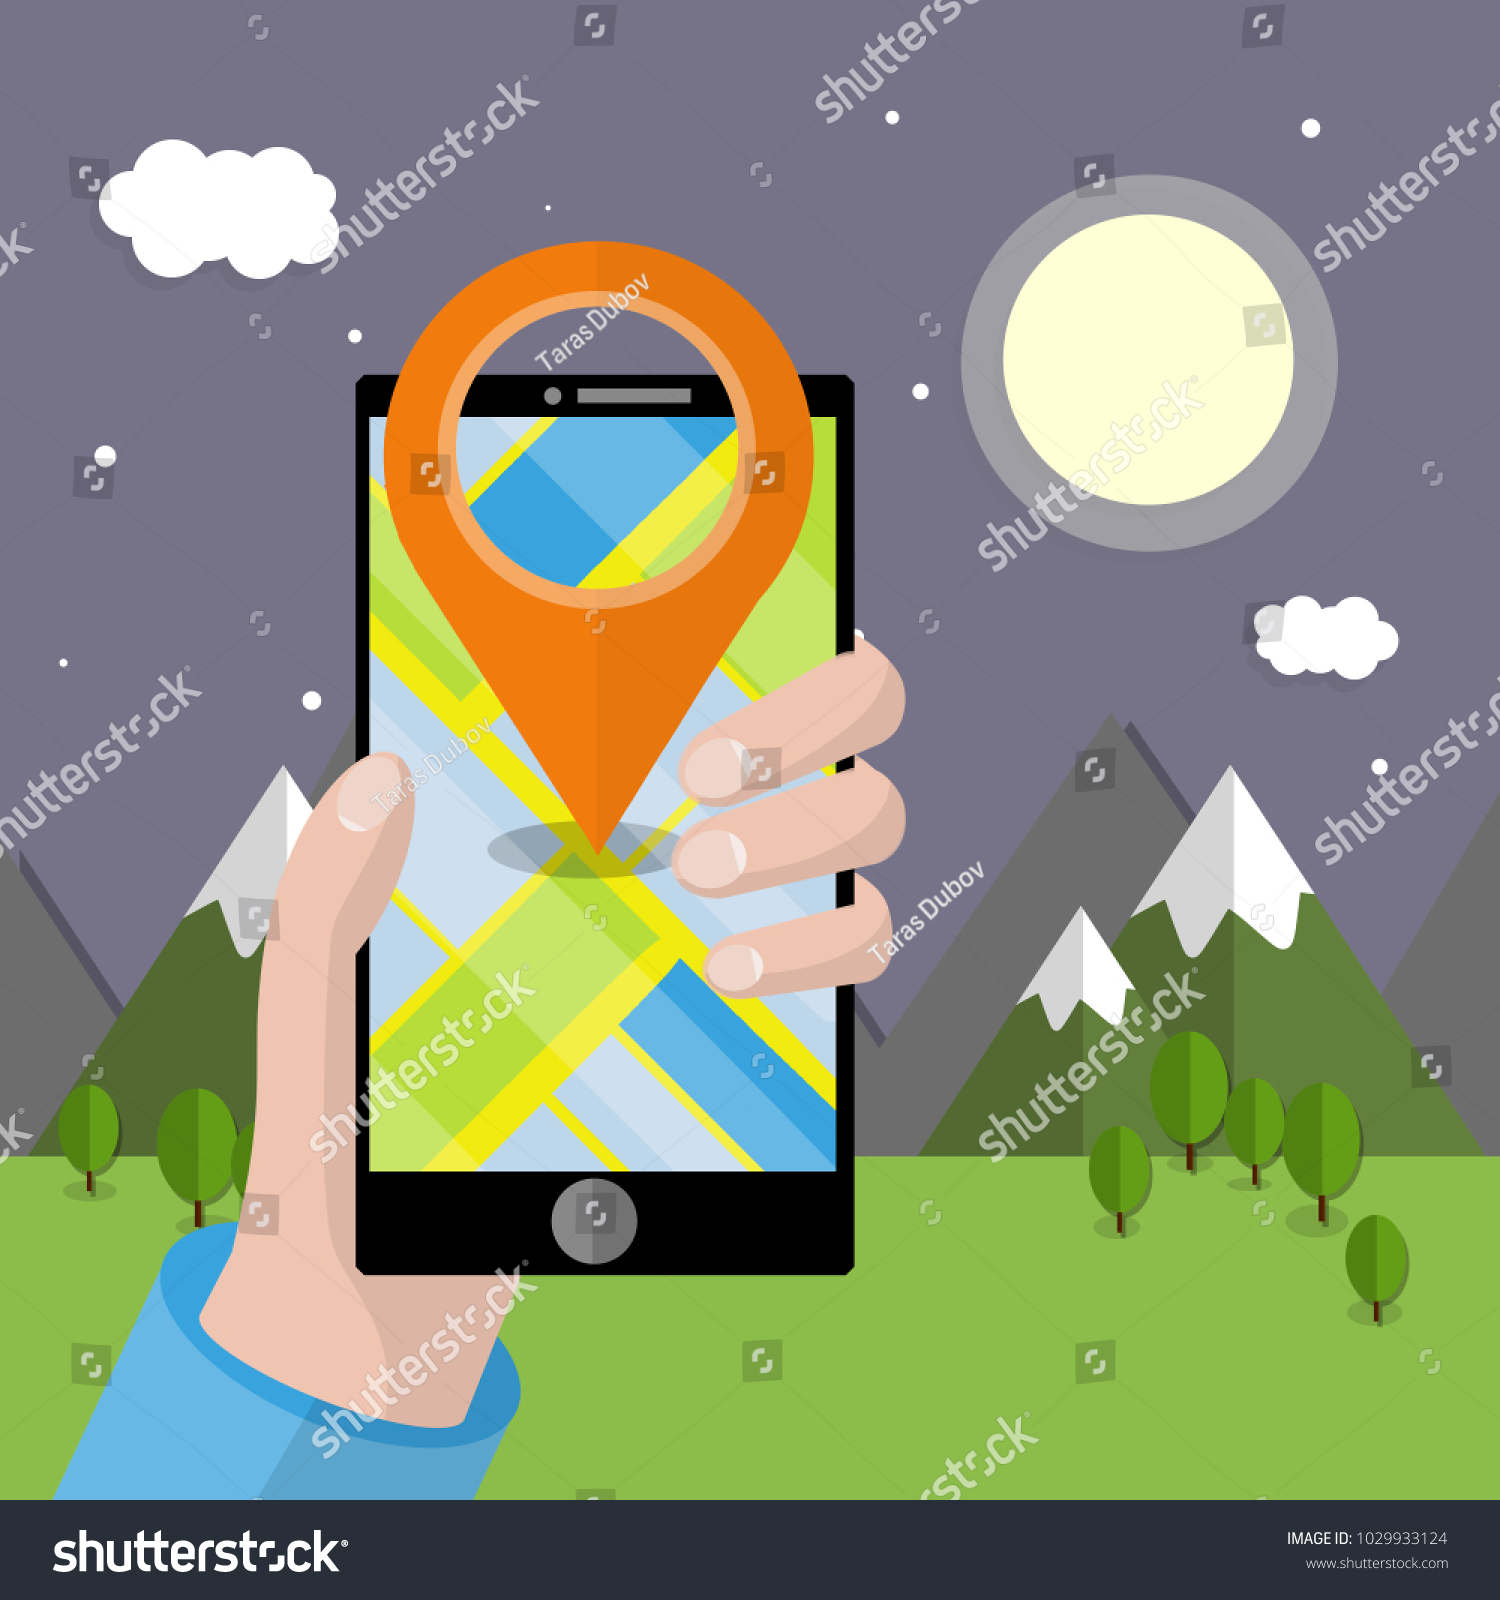 Cartoon flat illustration phone hand app stock vector 1029933124 cartoon flat illustration phone in hand with the app to navigate the search path in buycottarizona Images